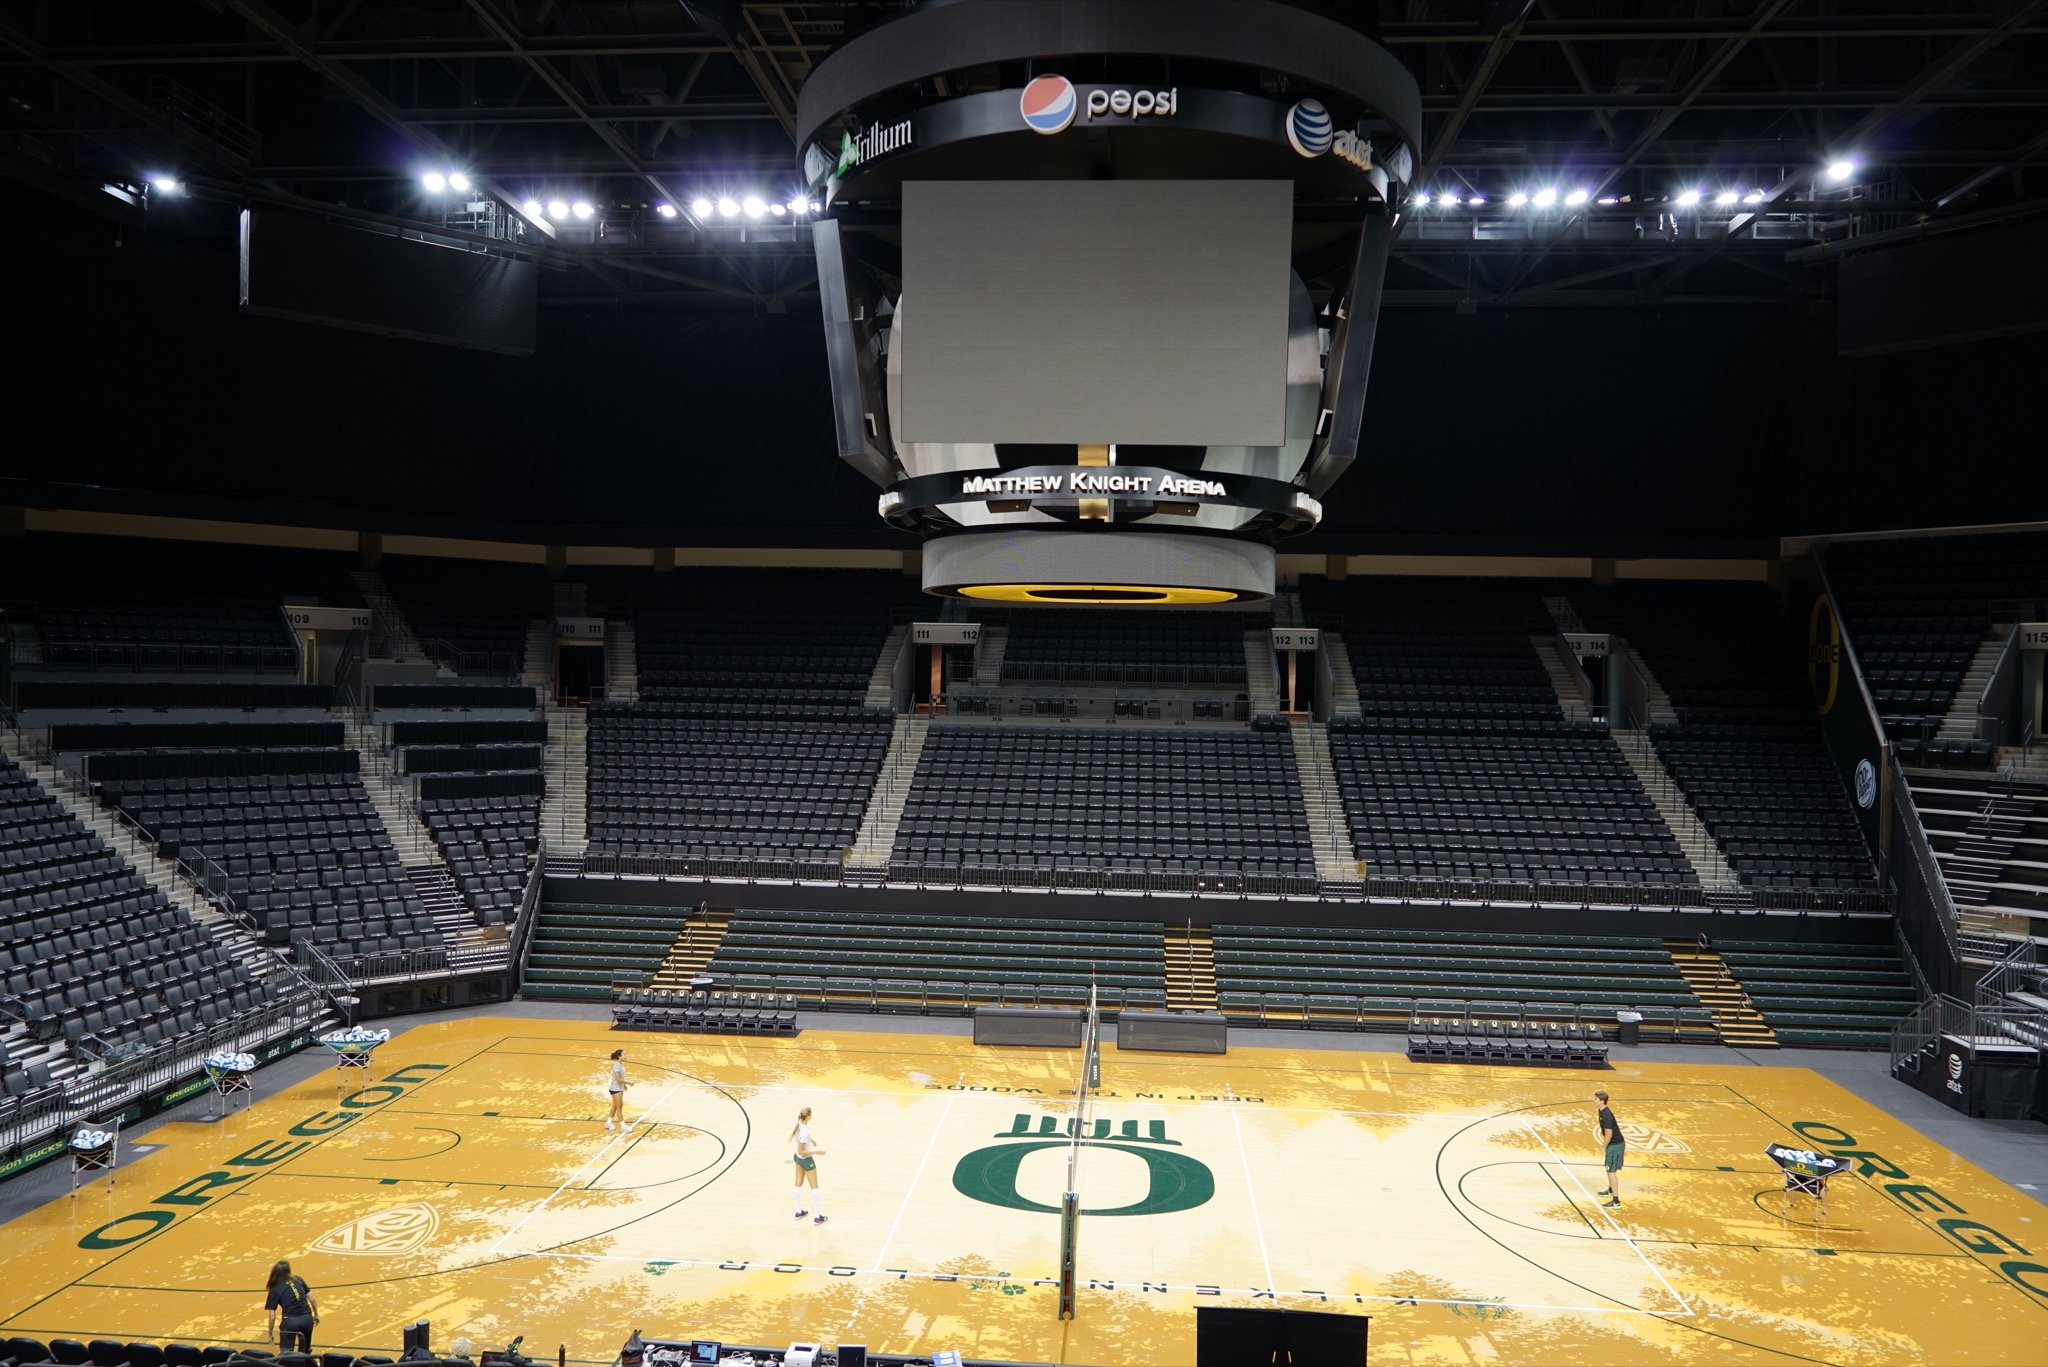 EUGENE, OR - August 20, 2014: Matthew Knight Arena on the University of Oregon campus. MKA hosts basketball games and special events for UO.